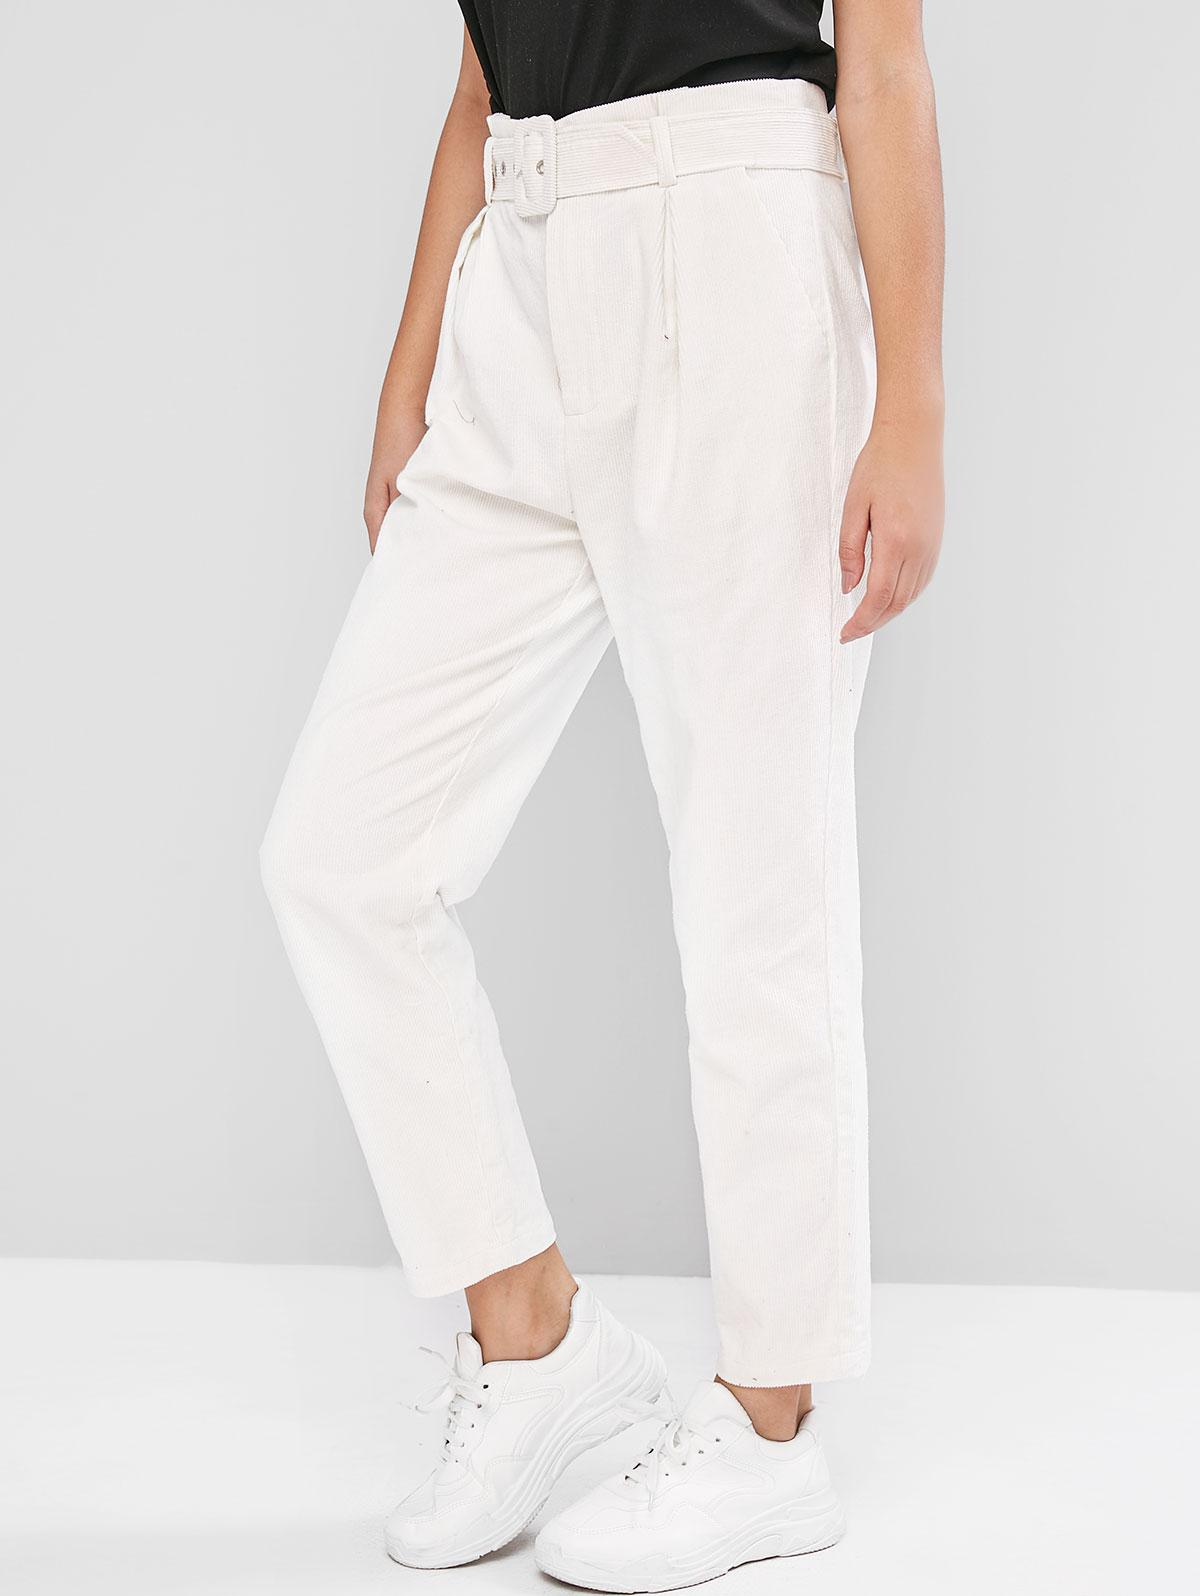 ZAFUL Belted High Waist Solid Corduroy Pants